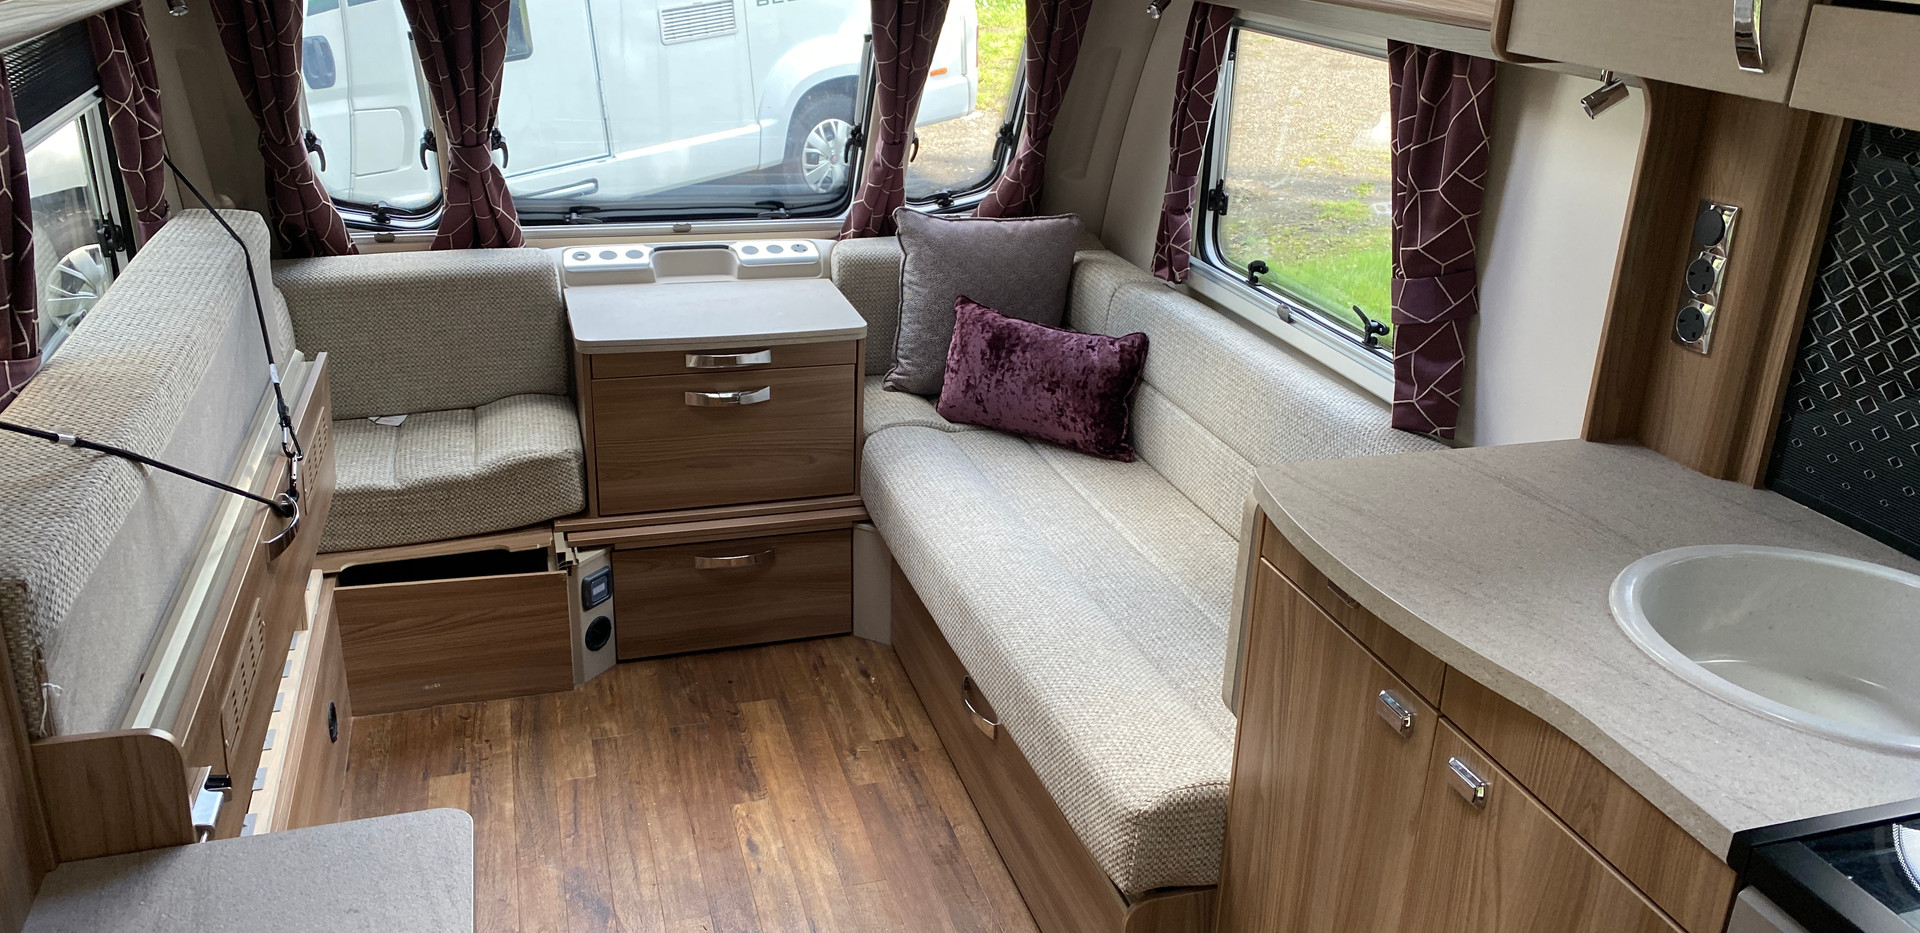 LIV Swift Challenger 480 I Wheelchair Accessible Caravan I Coachbuilt I United Kingdom